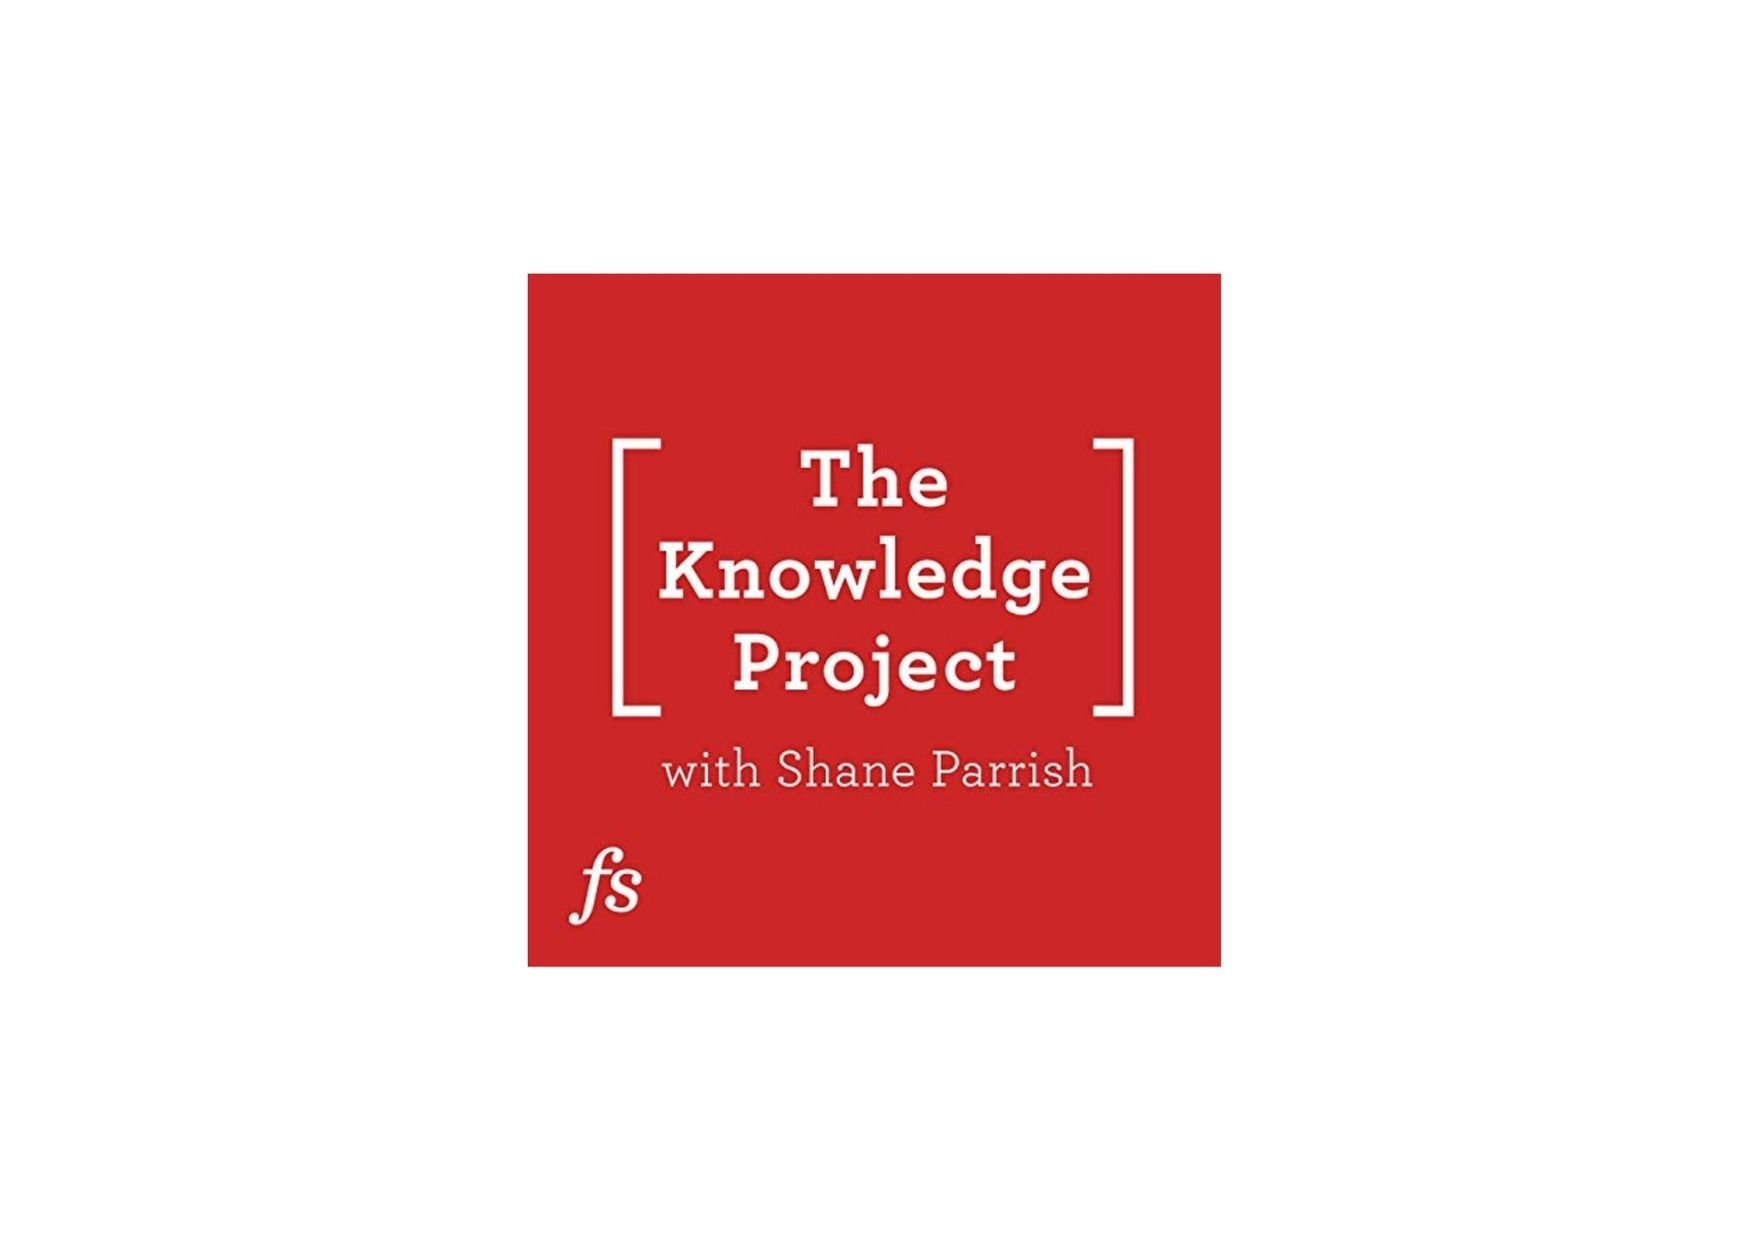 Noreena on The Knowledge Project with Shane Parrish